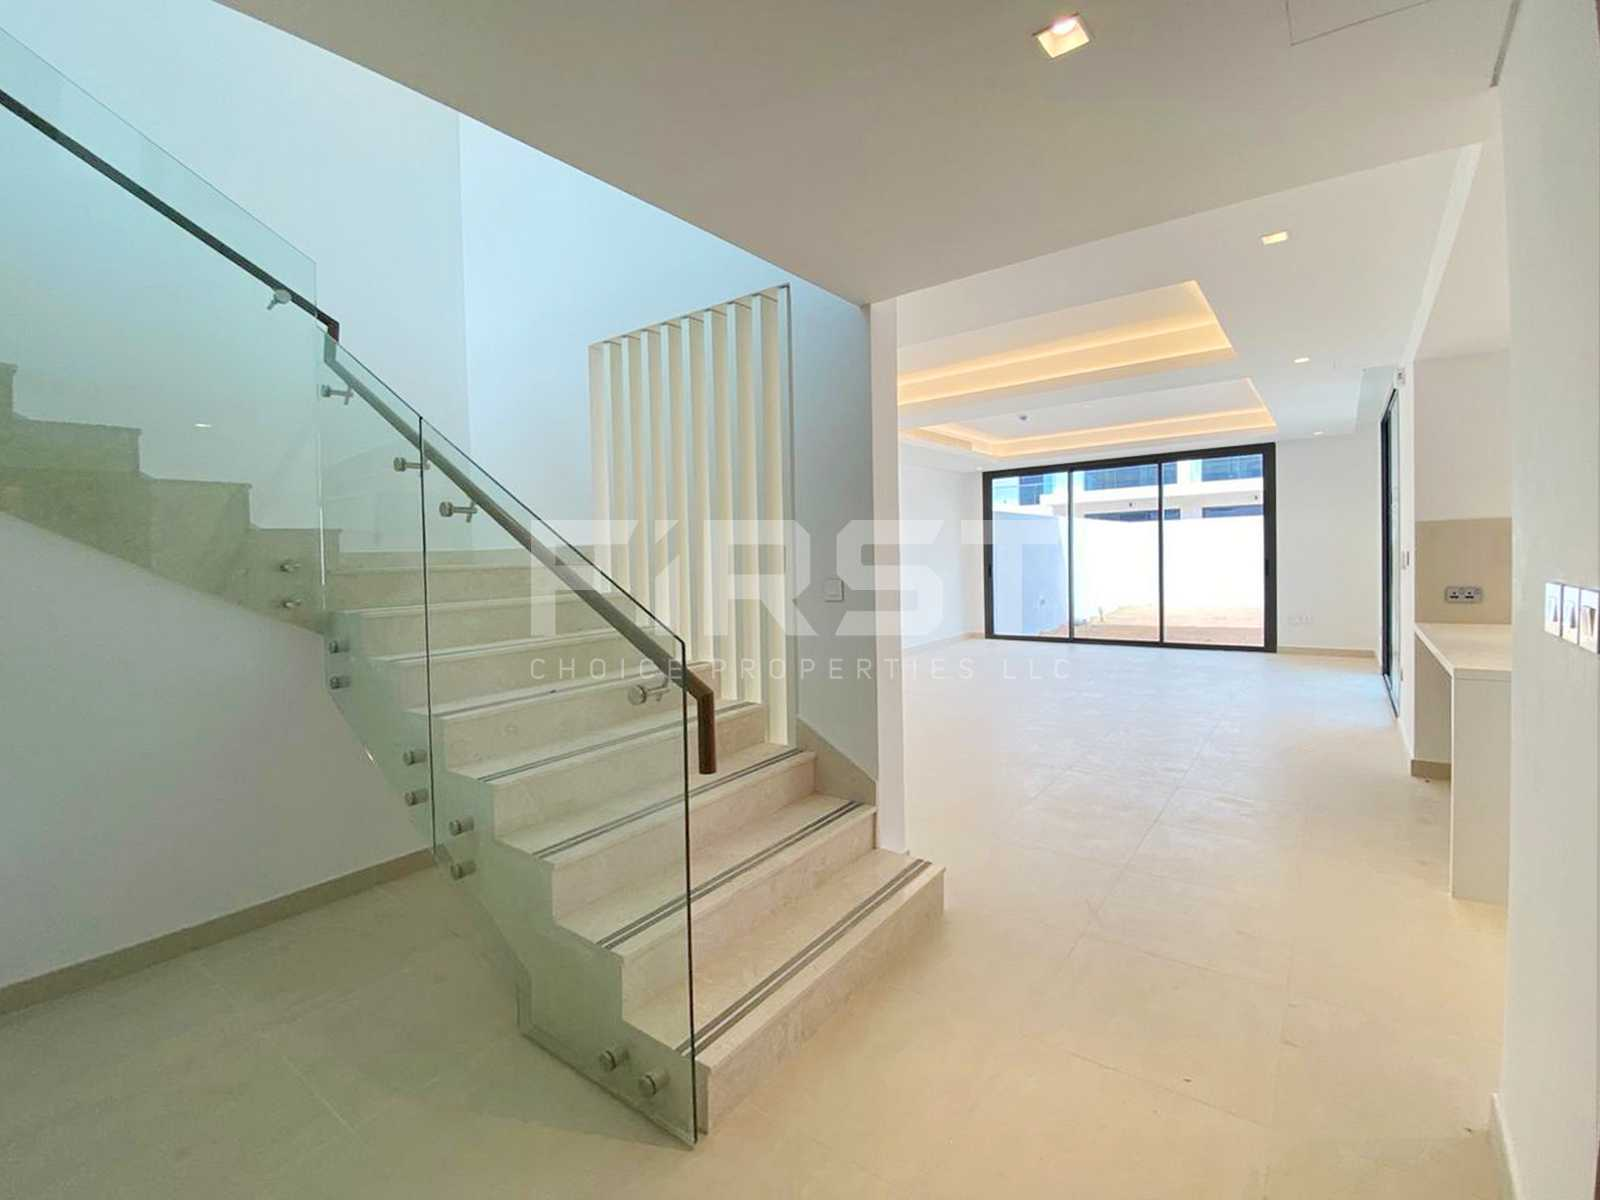 Internal Photo of 3 Bedroom Duplex Type Y in Yas Acres Yas Island Abu Dhabi UAE (2).jpg